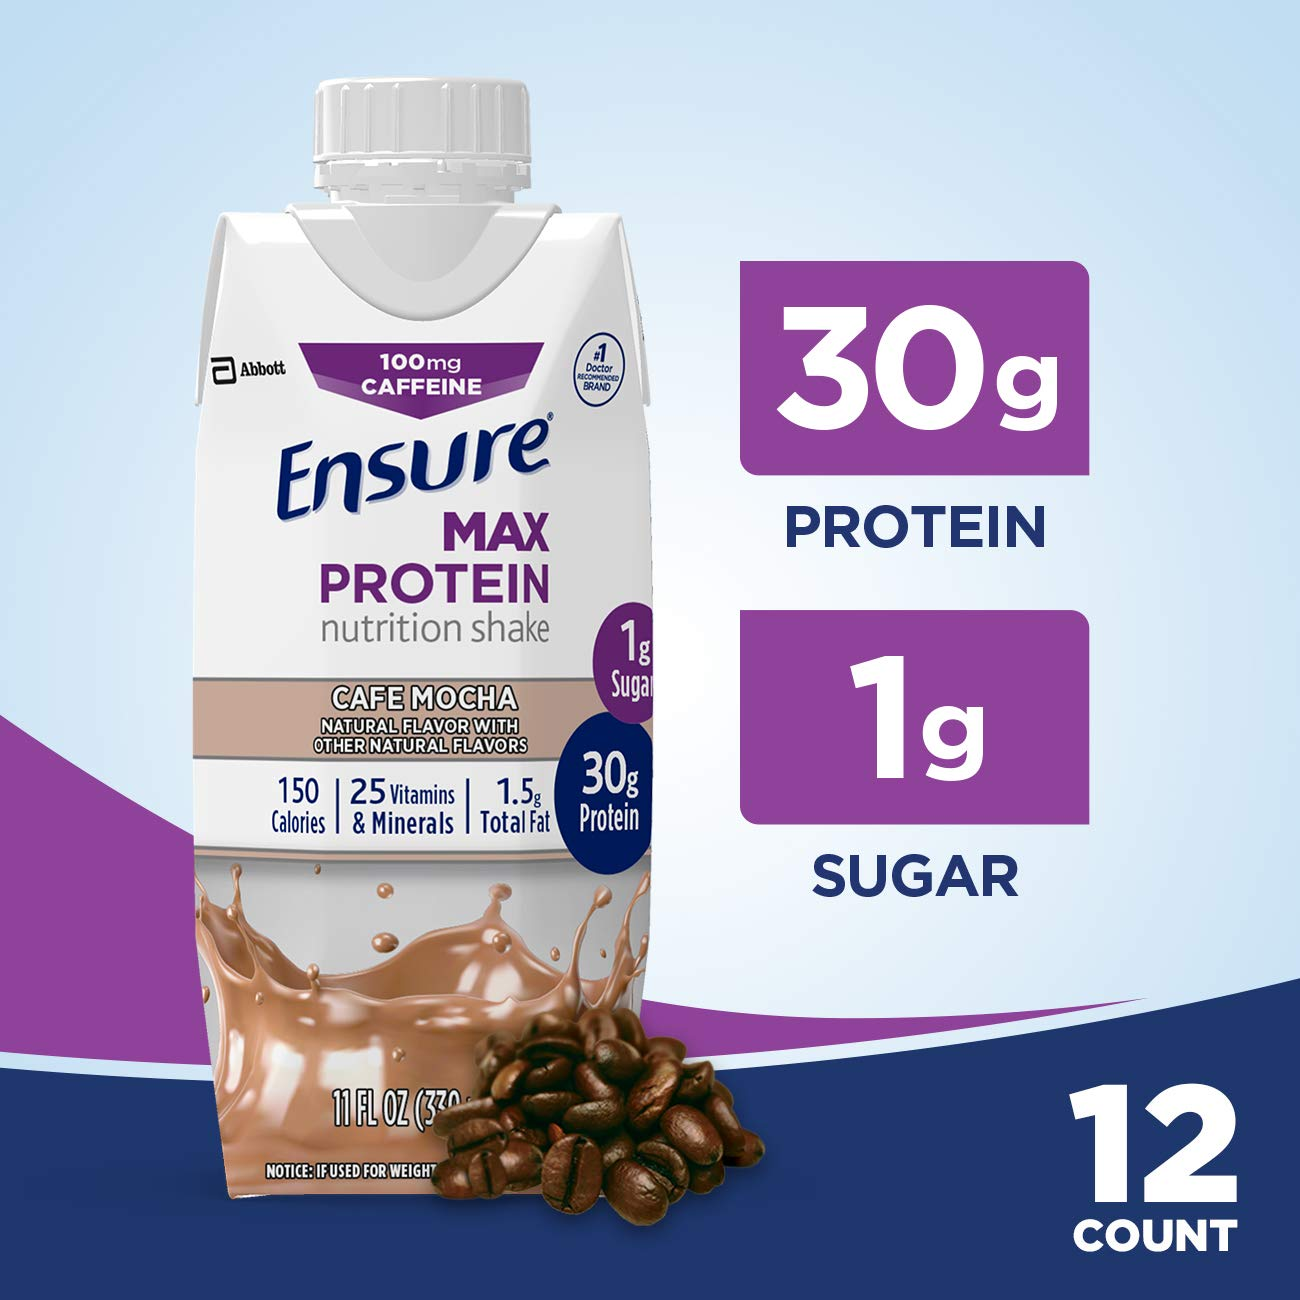 Ensure Max Protein Nutritional Shake with 30g of High-Quality Protein, 1g of Sugar, High Protein Shake, Café Mocha, 11 fl oz, 12 Count by Ensure